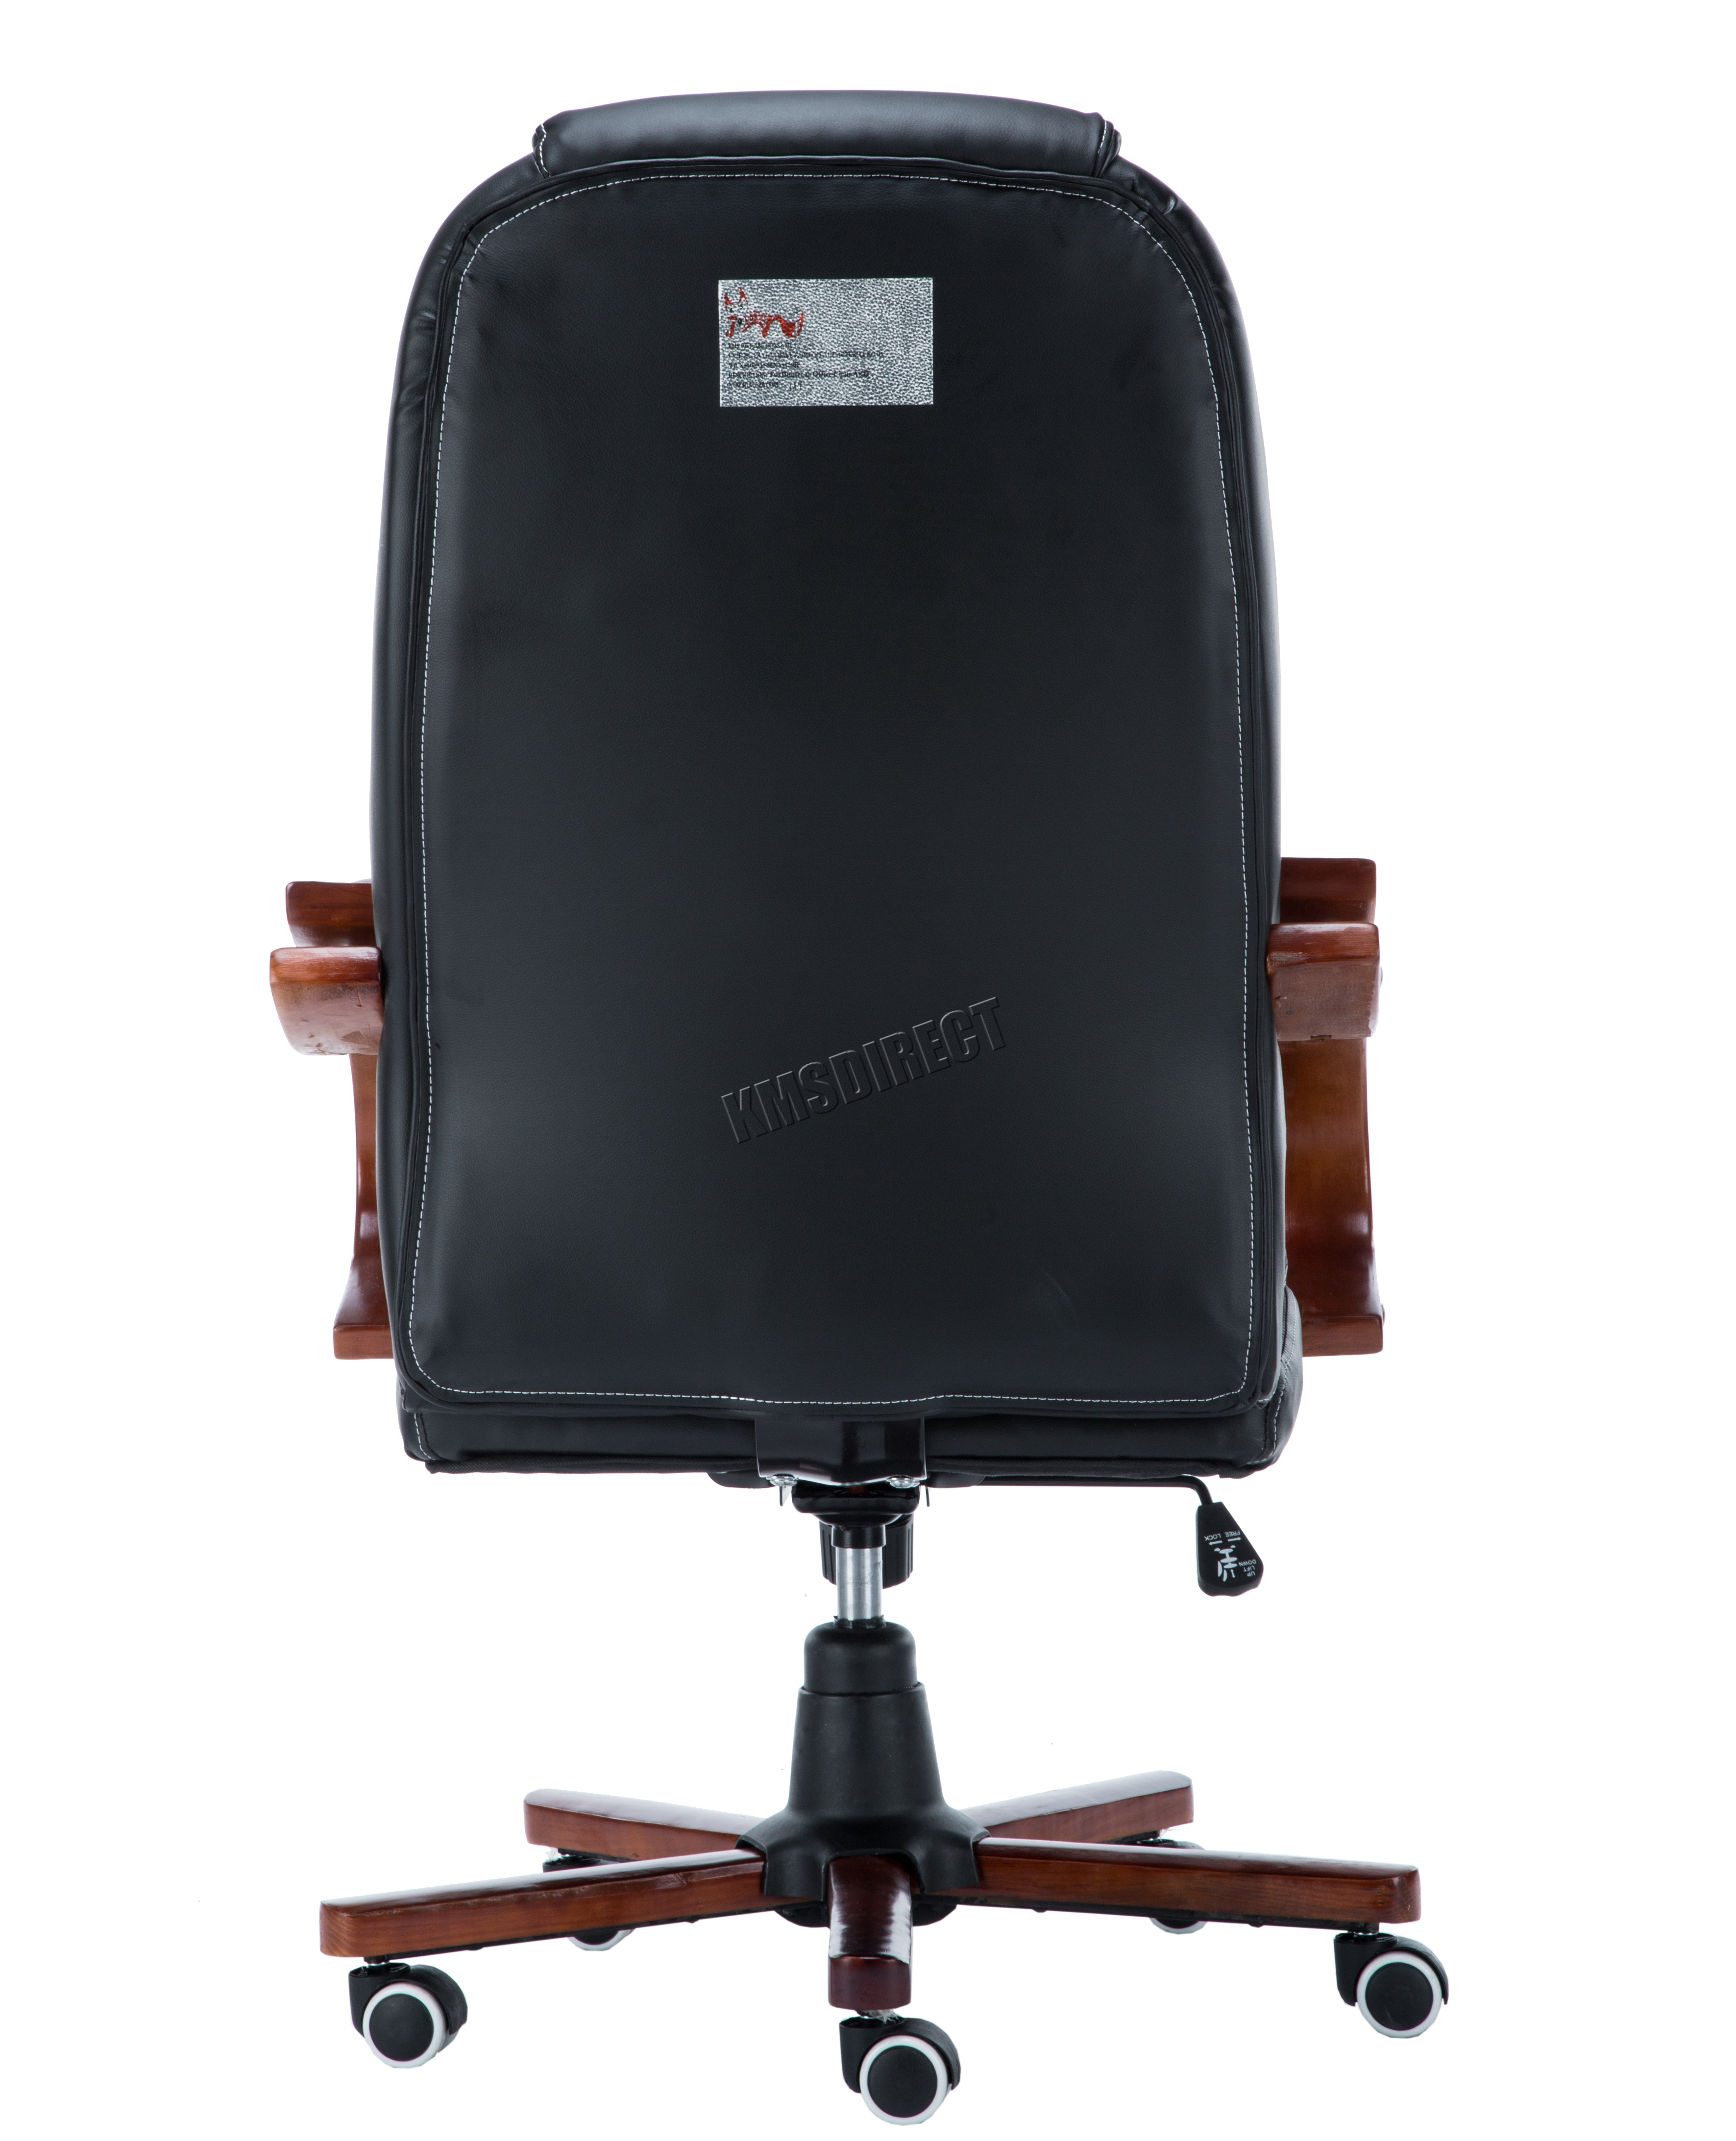 ergonomic chair pros steel hs code westwood computer executive office pu leather swivel